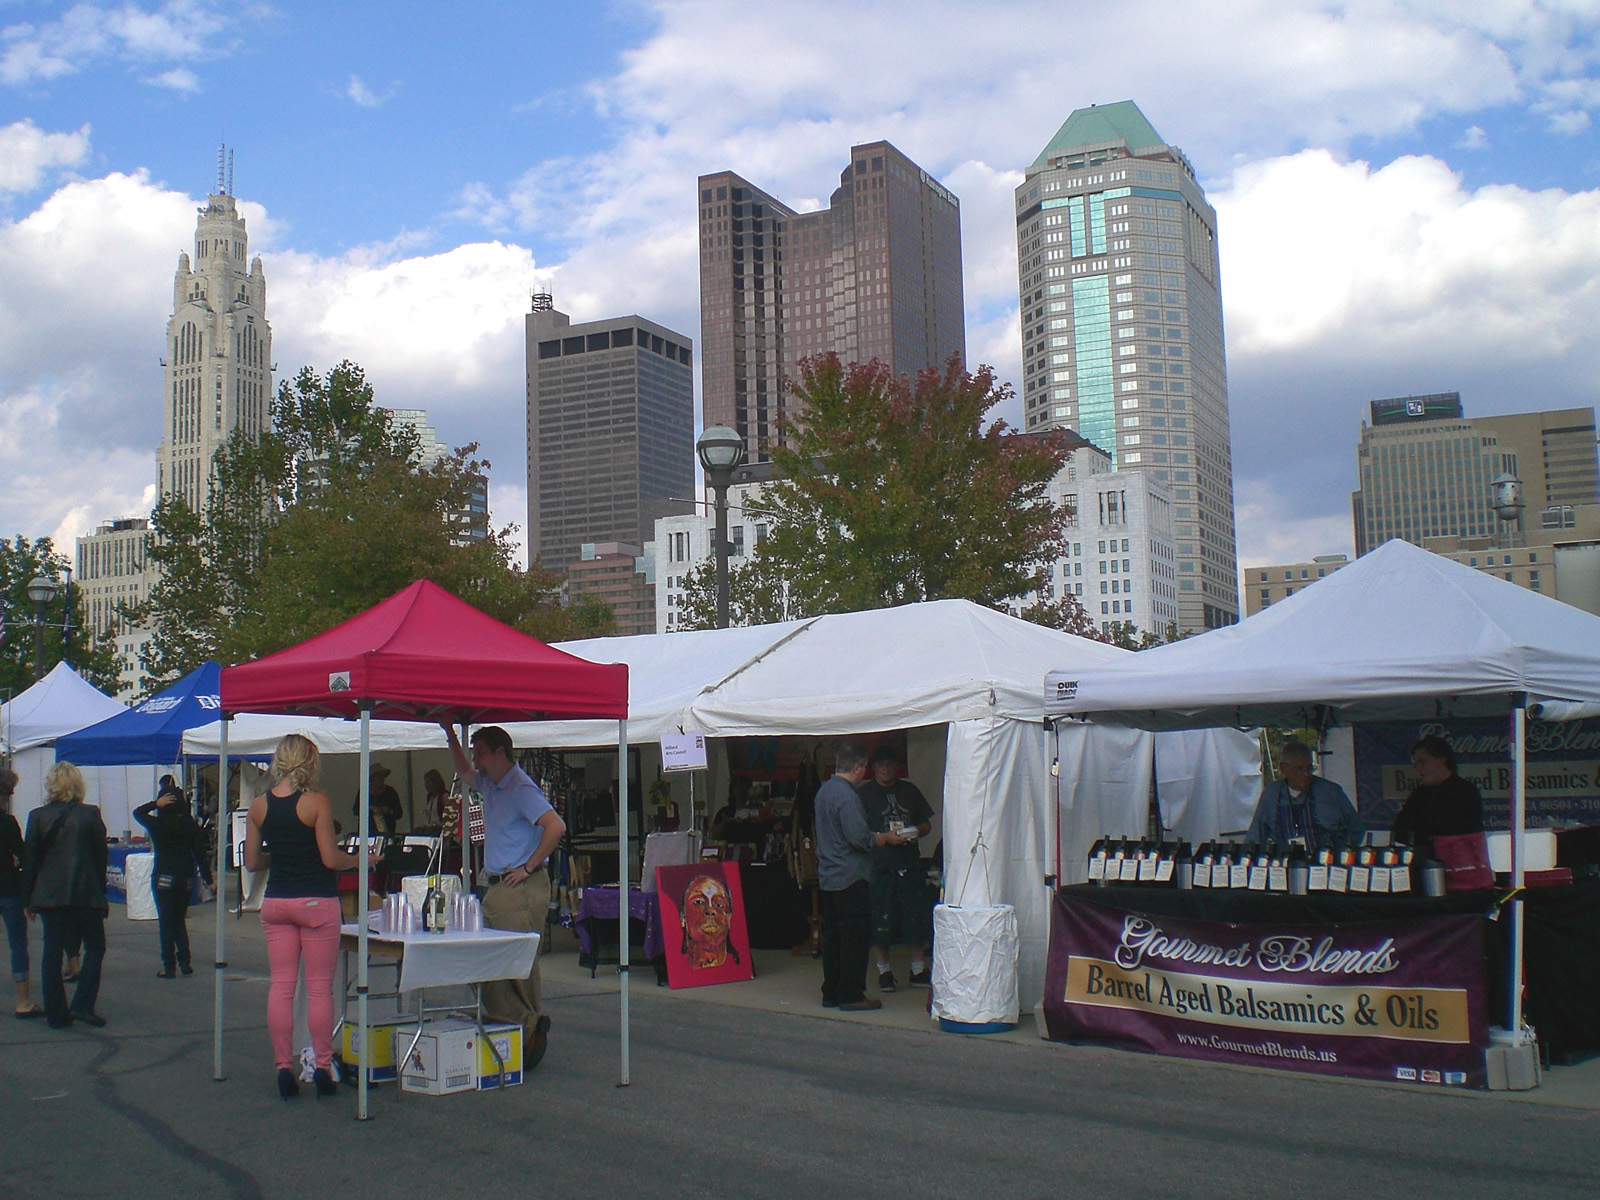 A view from Gina and Paul Atwell's booth at the Riverfron Art Festival